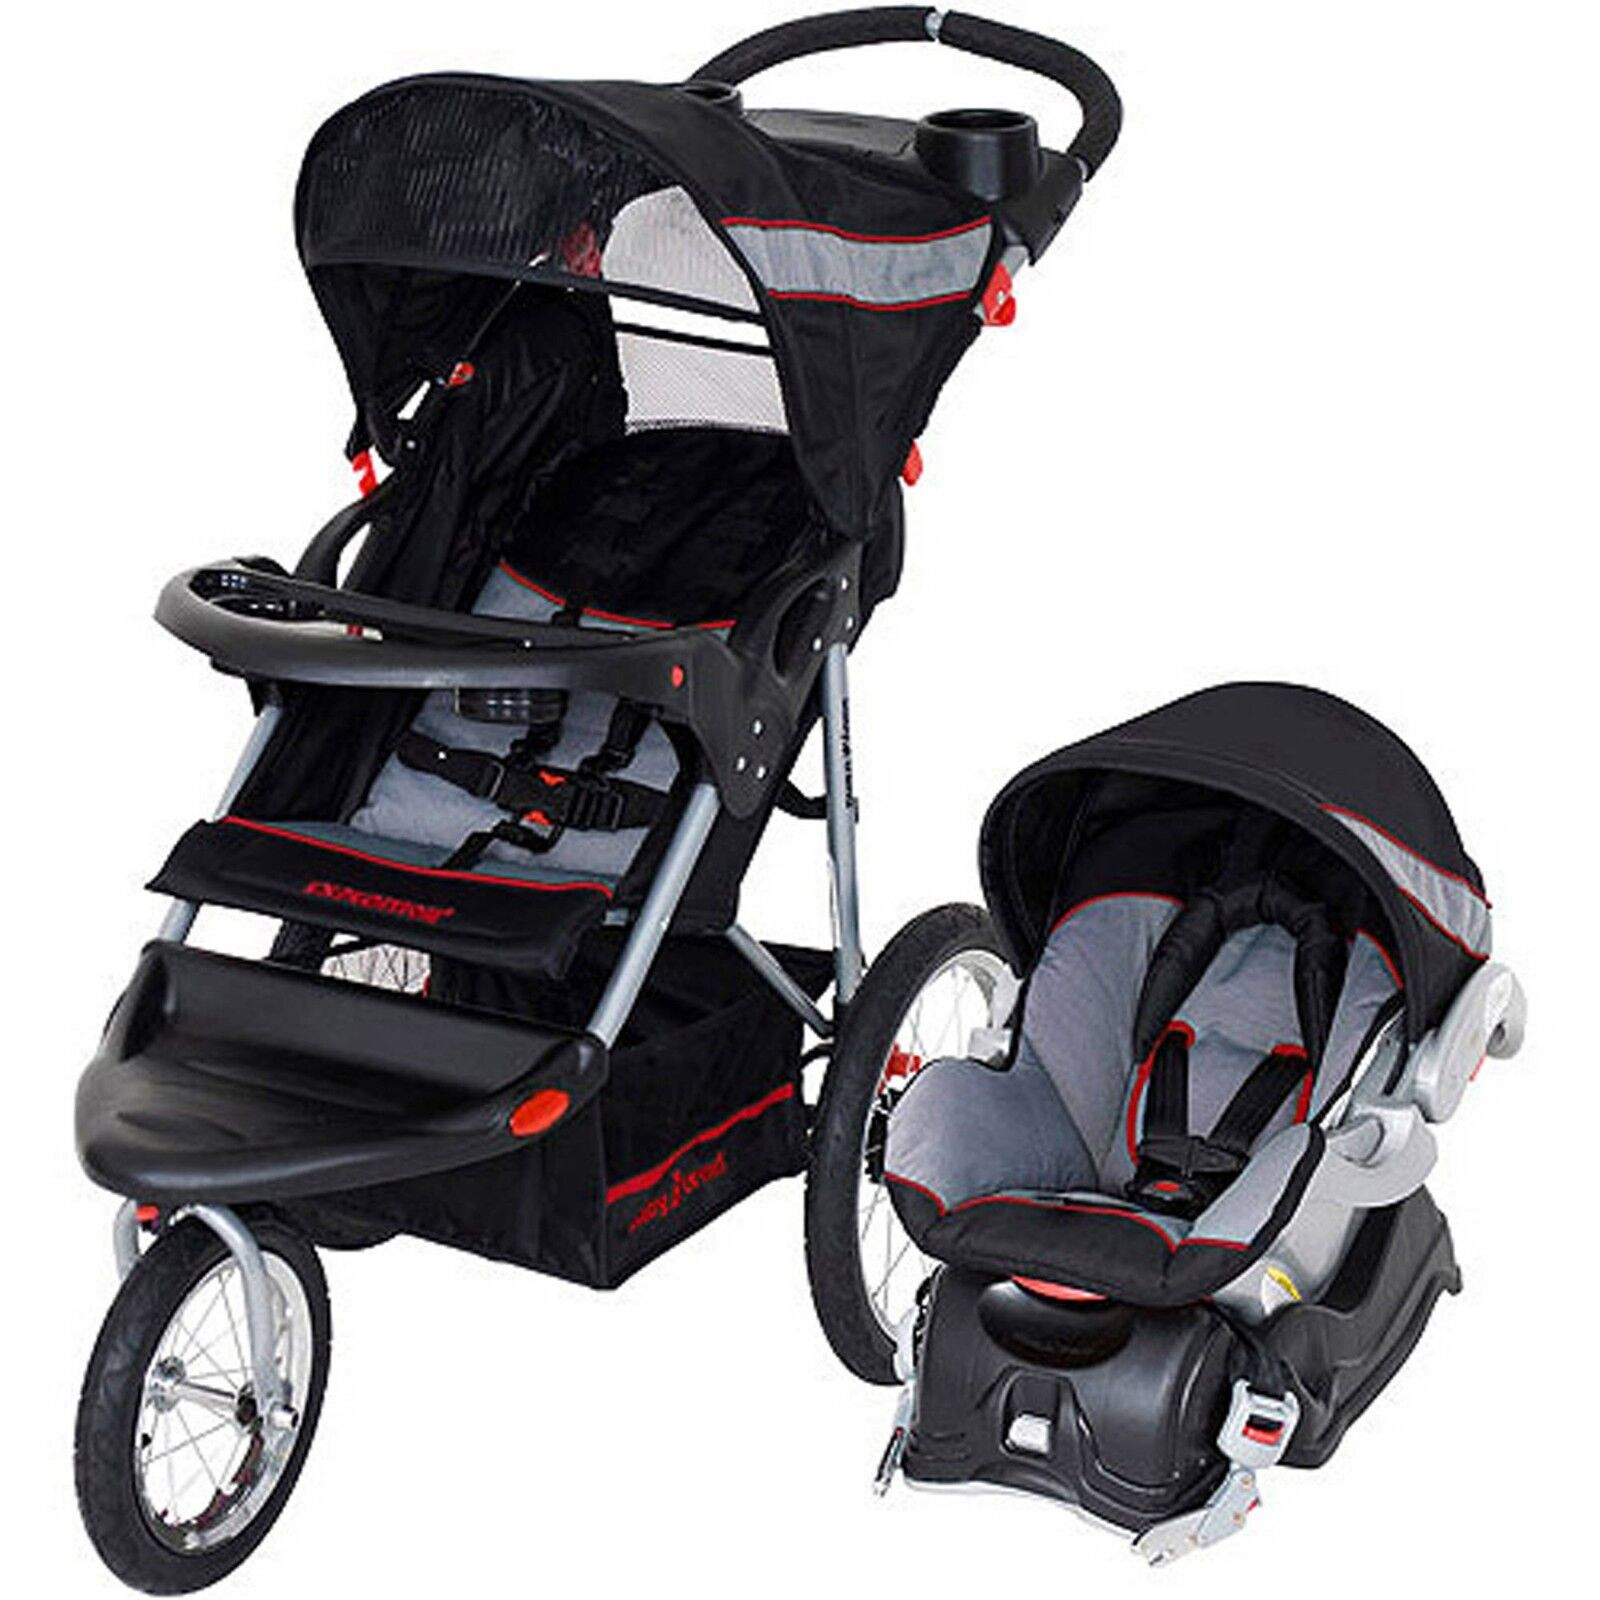 Jogging Stroller Car Seat Combo Travel System 3 In 1 Baby Tr